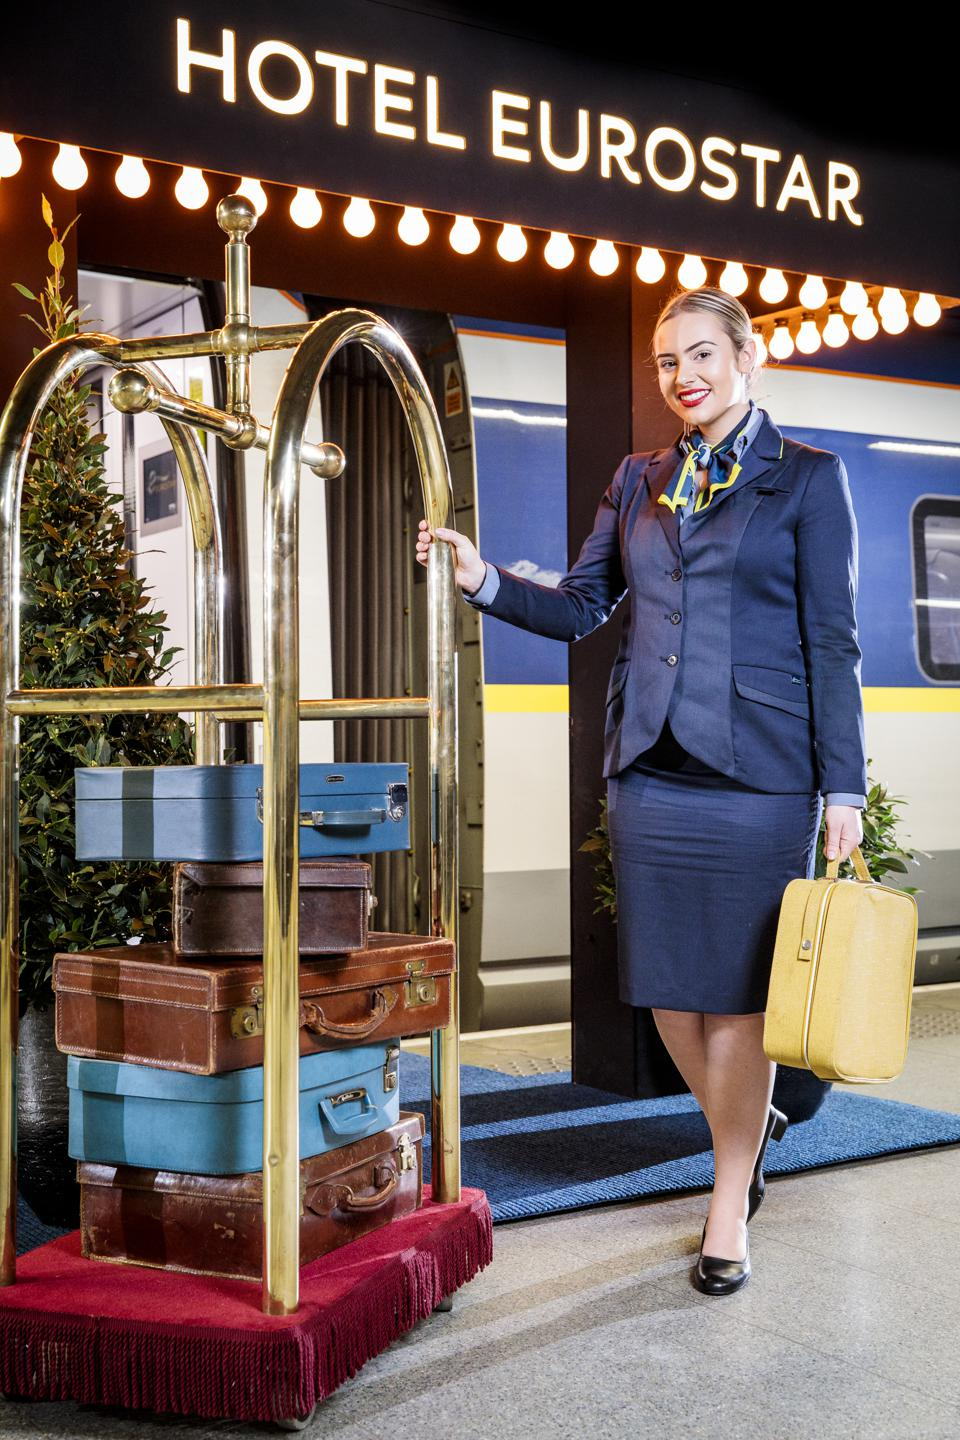 Eurostar Launches New Hotel Collection